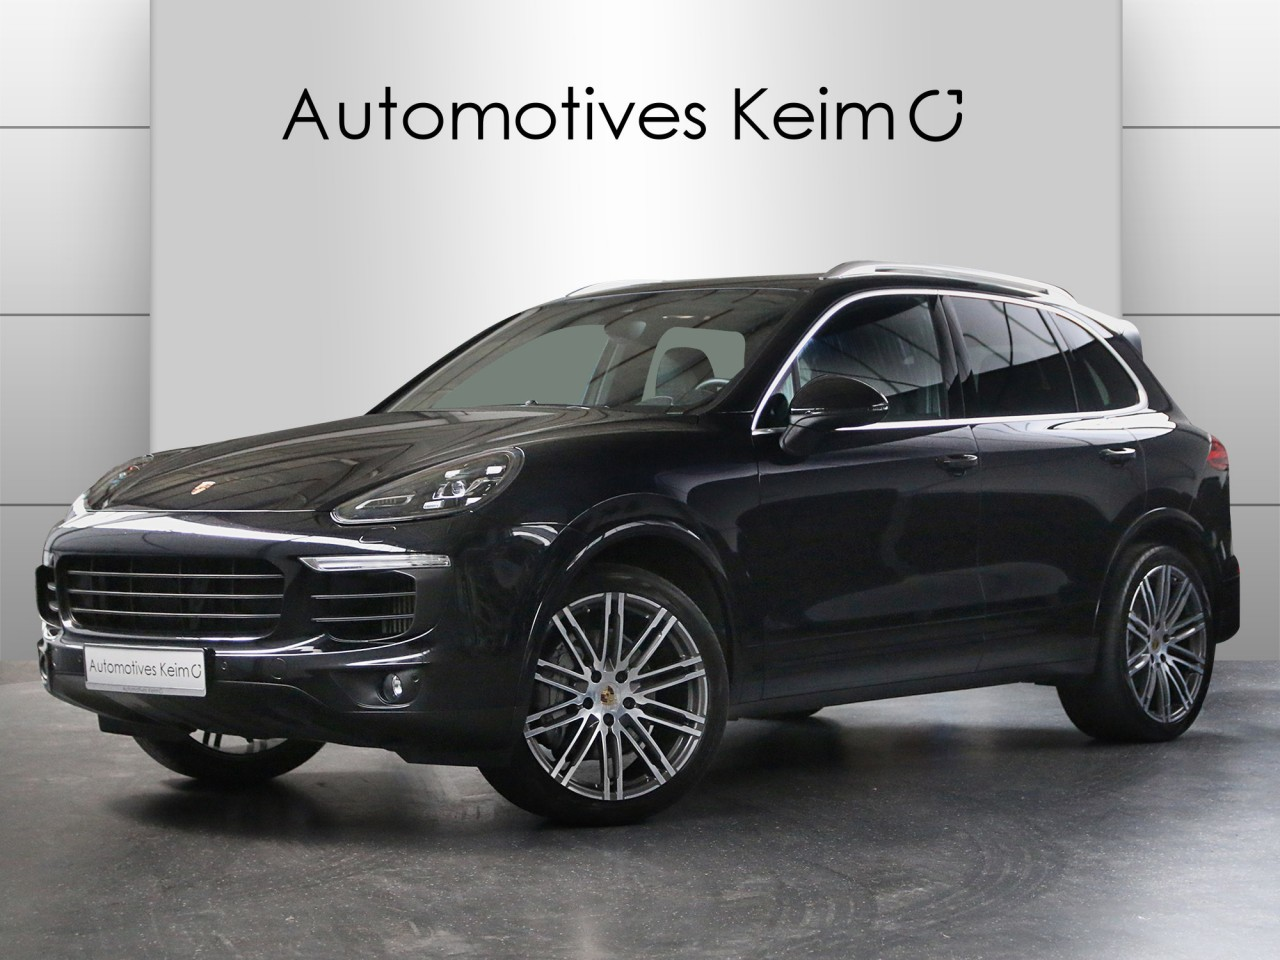 PORSCHE_CAYENNE_Automotives_Keim_GmbH_63500_Seligenstadt_www.automotives-keim.de_oliver_keim_000104